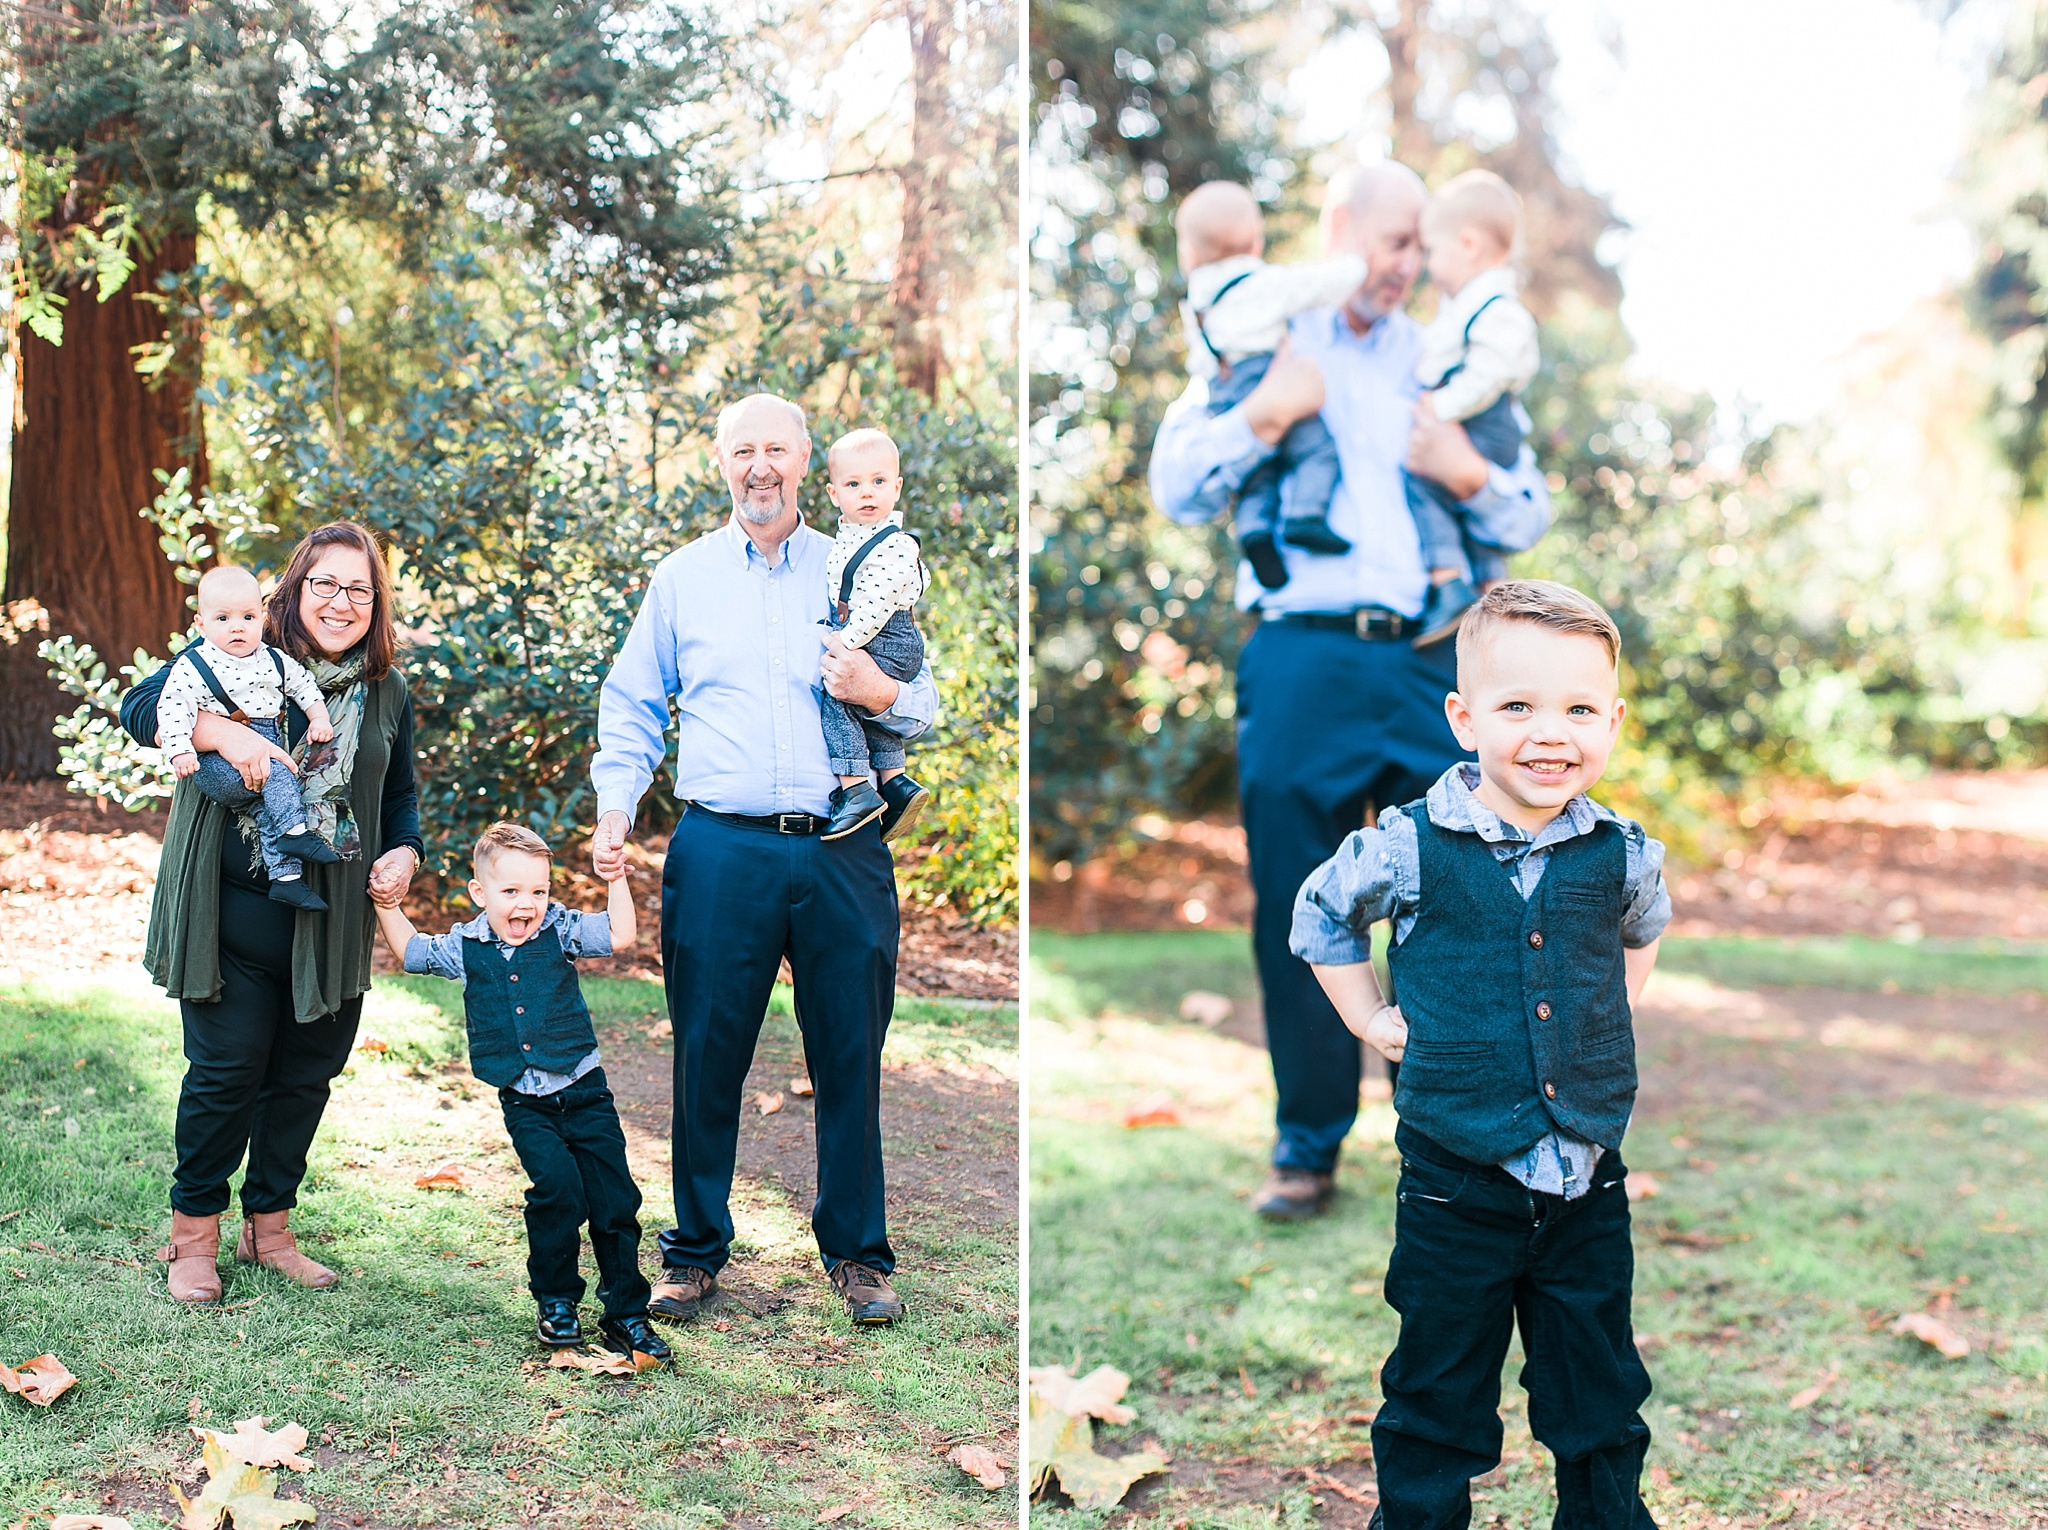 Claremont-Colleges-Family-Photos-3_WEB.jpg